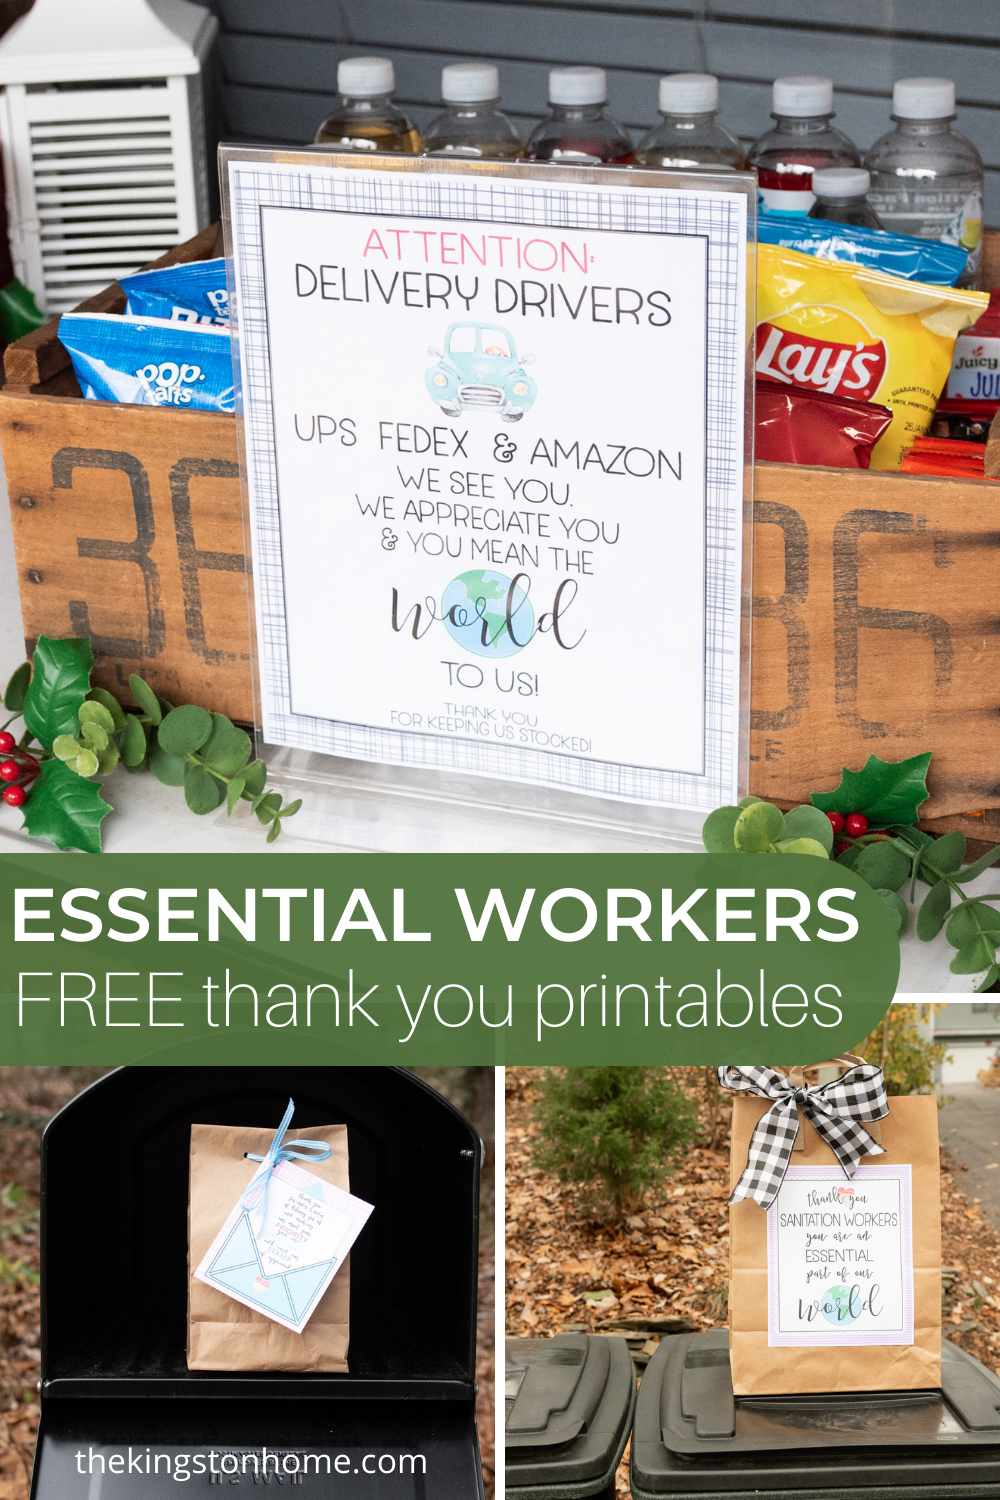 Free Essential Worker Thank You Printables - The Kingston Home: In a year where we have all been trying to stay home and stay safe, essential workers have been a lifeline for many families. Today we're sharing five FREE essential worker thank you prints that will help you to showcase your gratitude for those essential workers in your community! via @craftykingstons